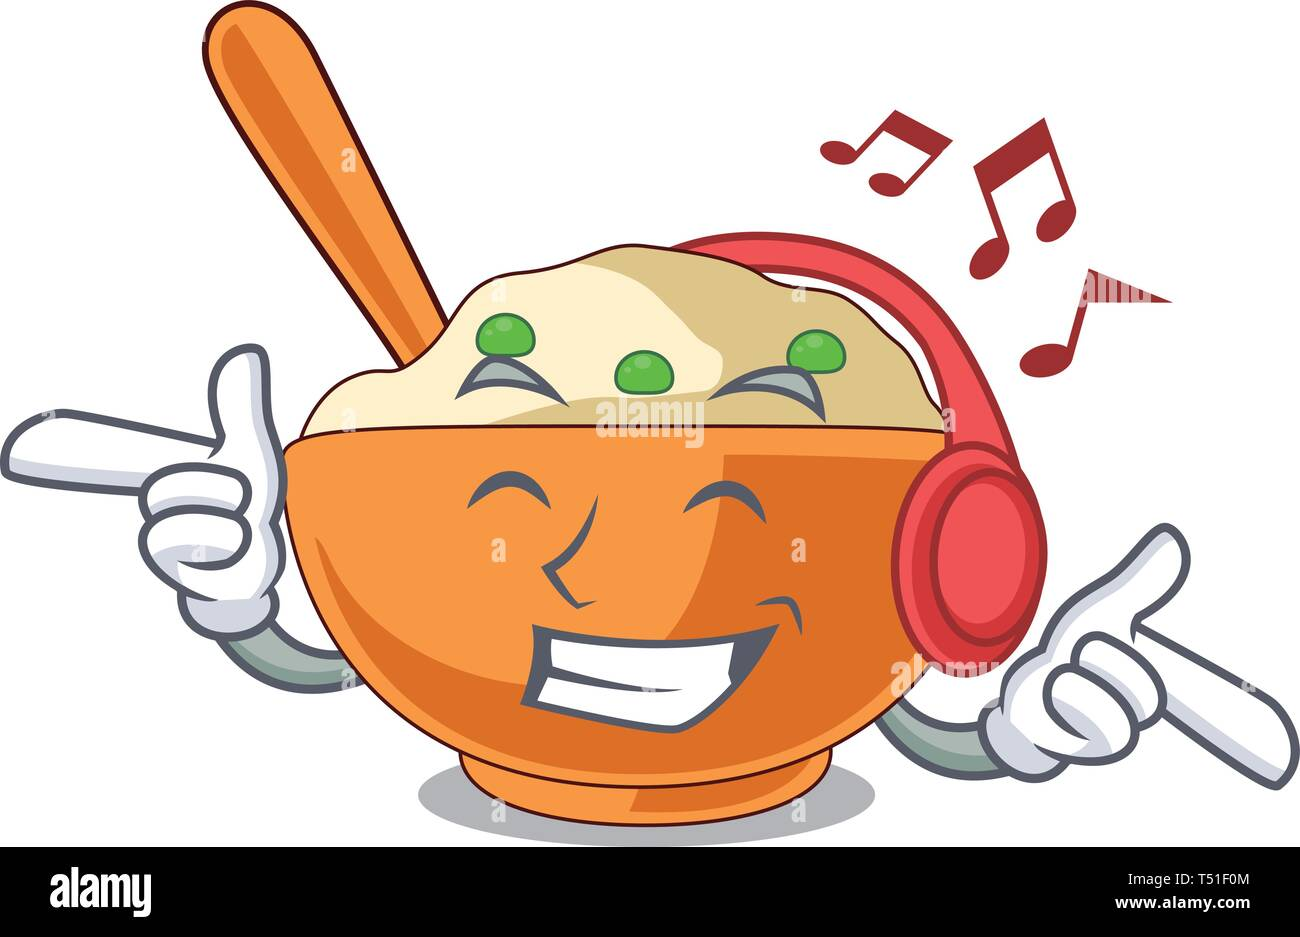 Listening music mashed potato in the shape mascot - Stock Image